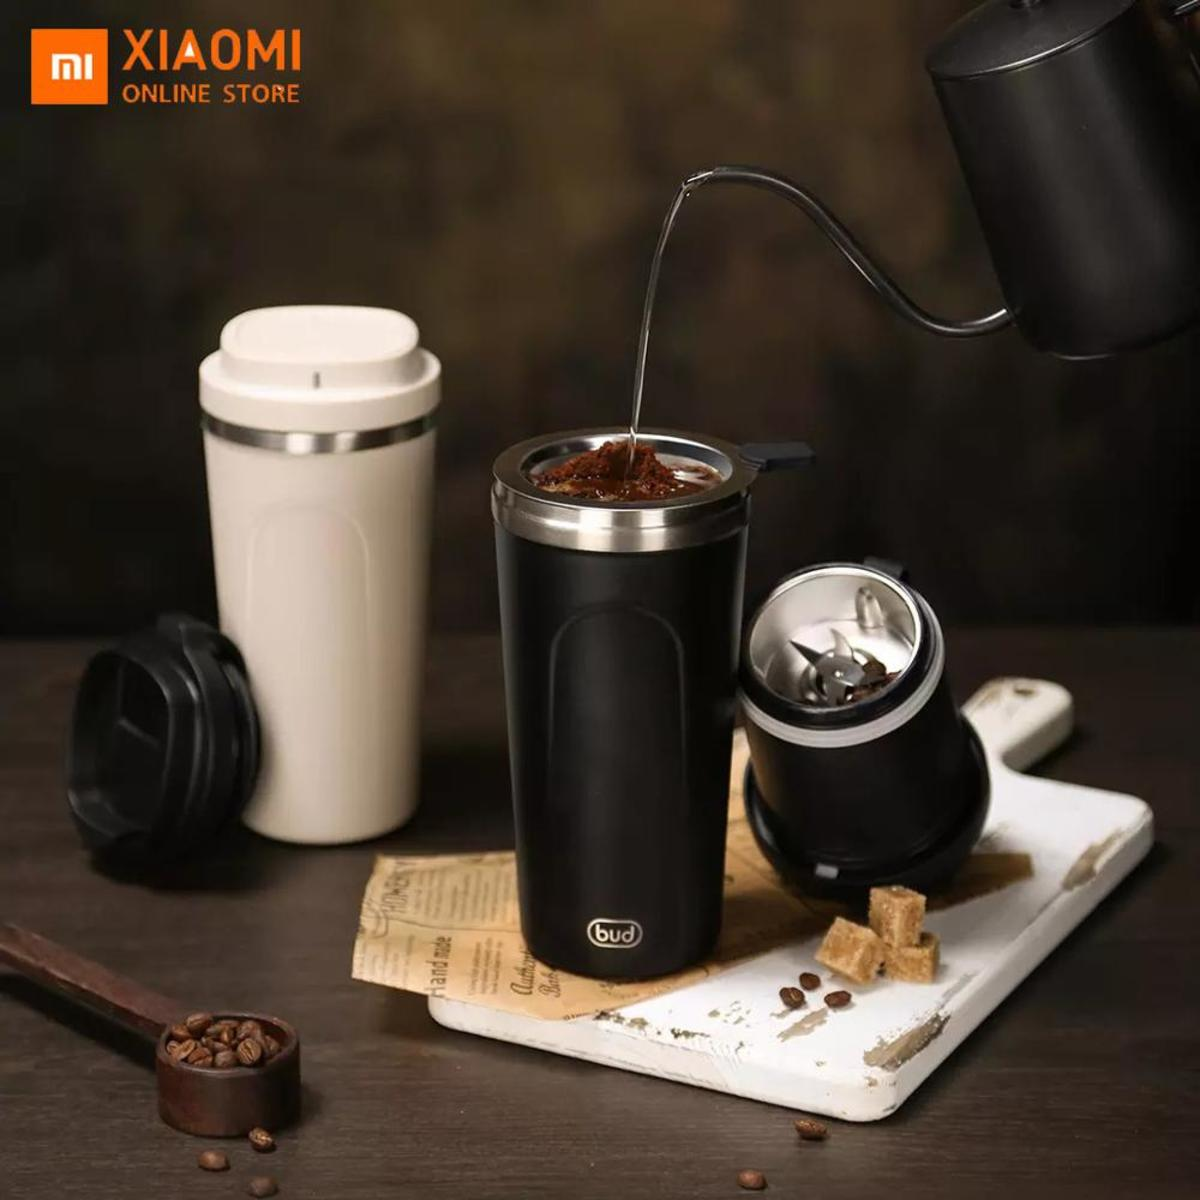 Product Review - Xiaomi Coffee Grinder Bud